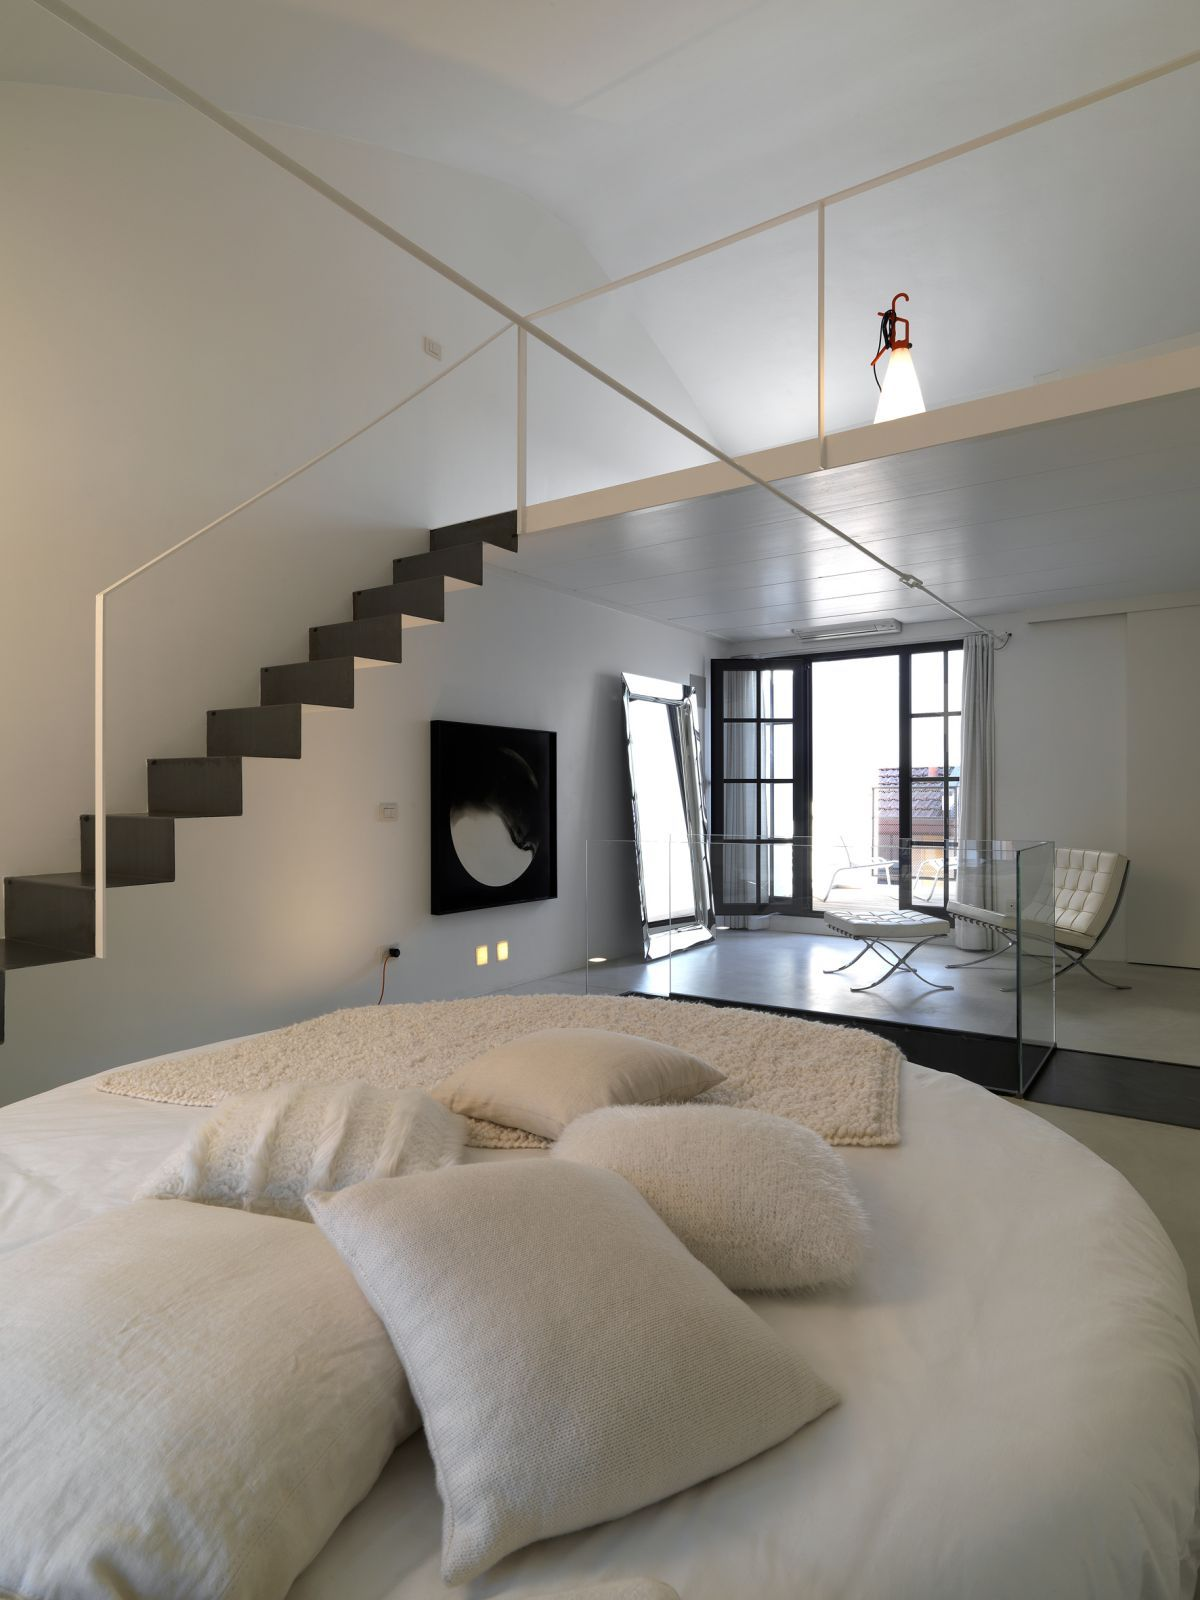 New Loft Bedroom Design With Modern Interior Photo Part Of At Tiny Houses And